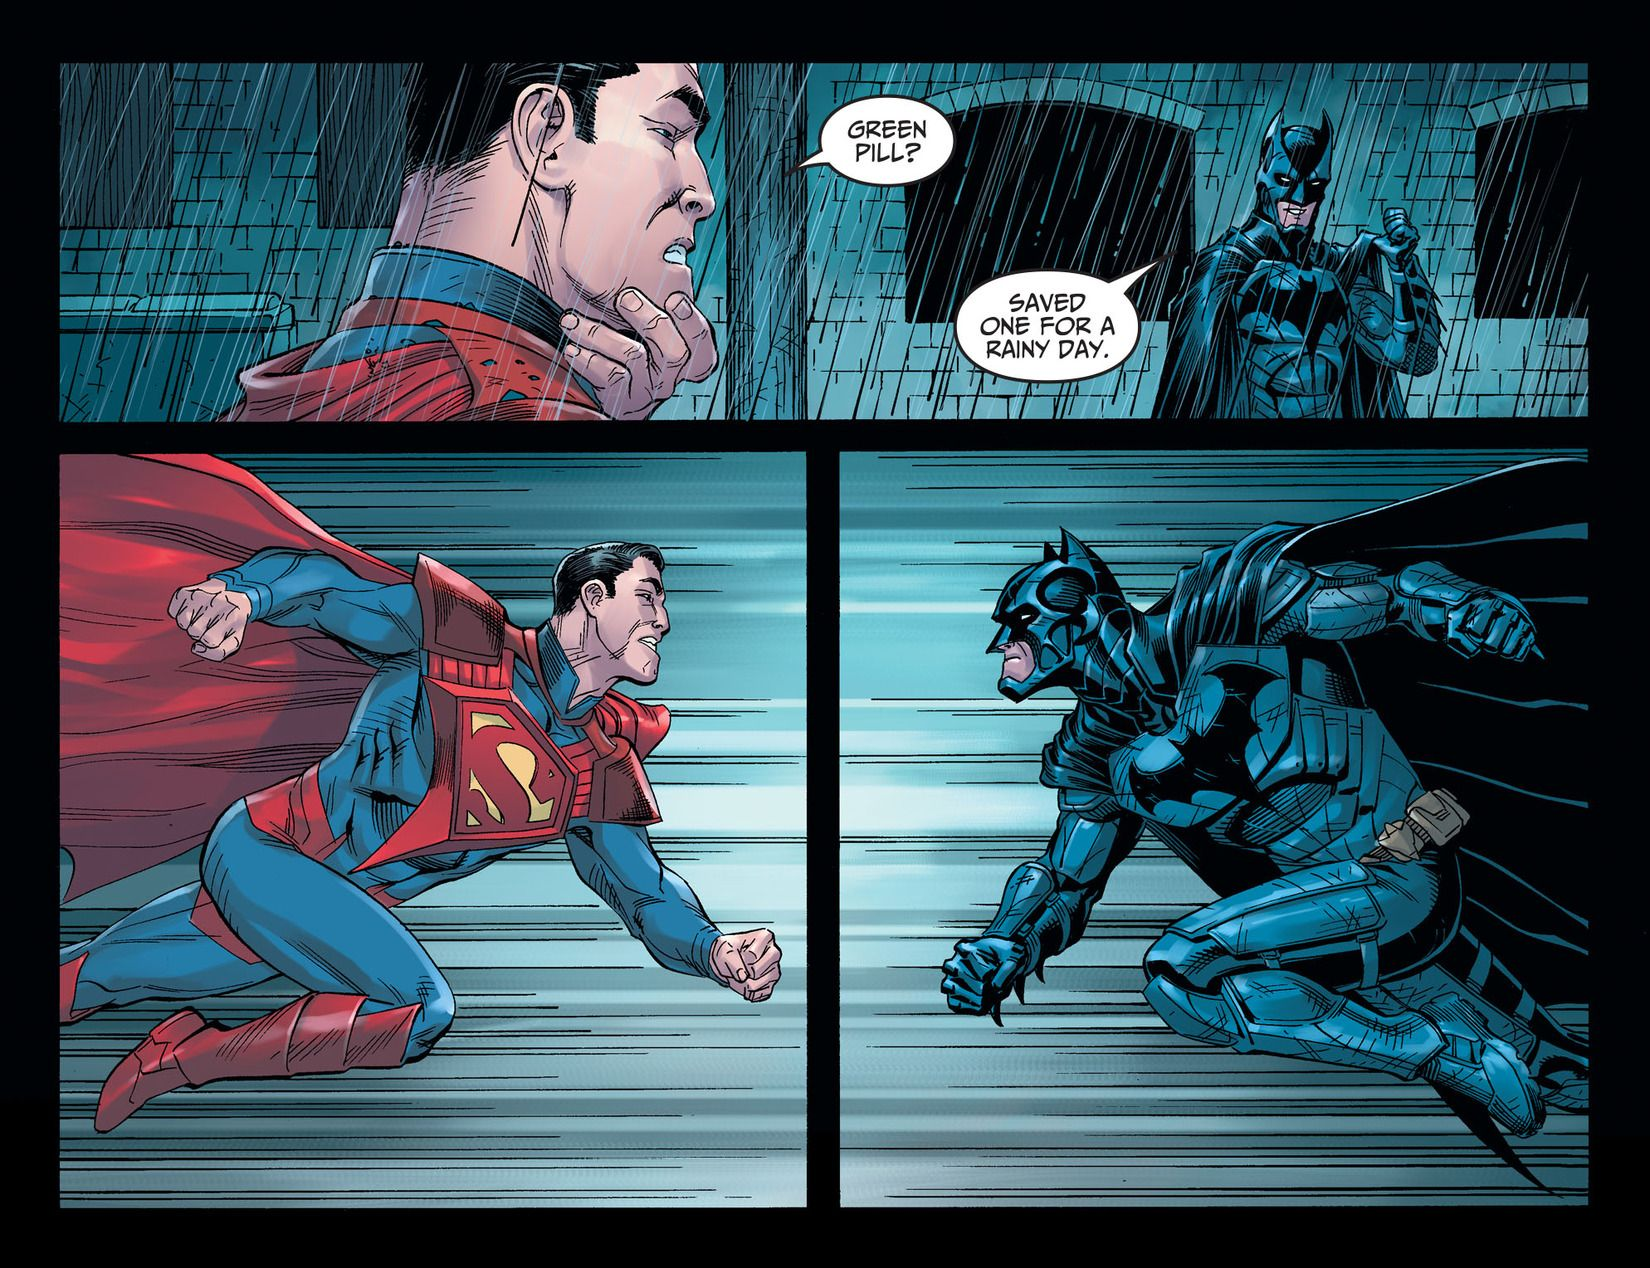 Injustice Gods Among Us Year Five Issue 25 Read Injustice Gods Among Us Year Five Issue 25 Comic Online In Universo Dc Universo